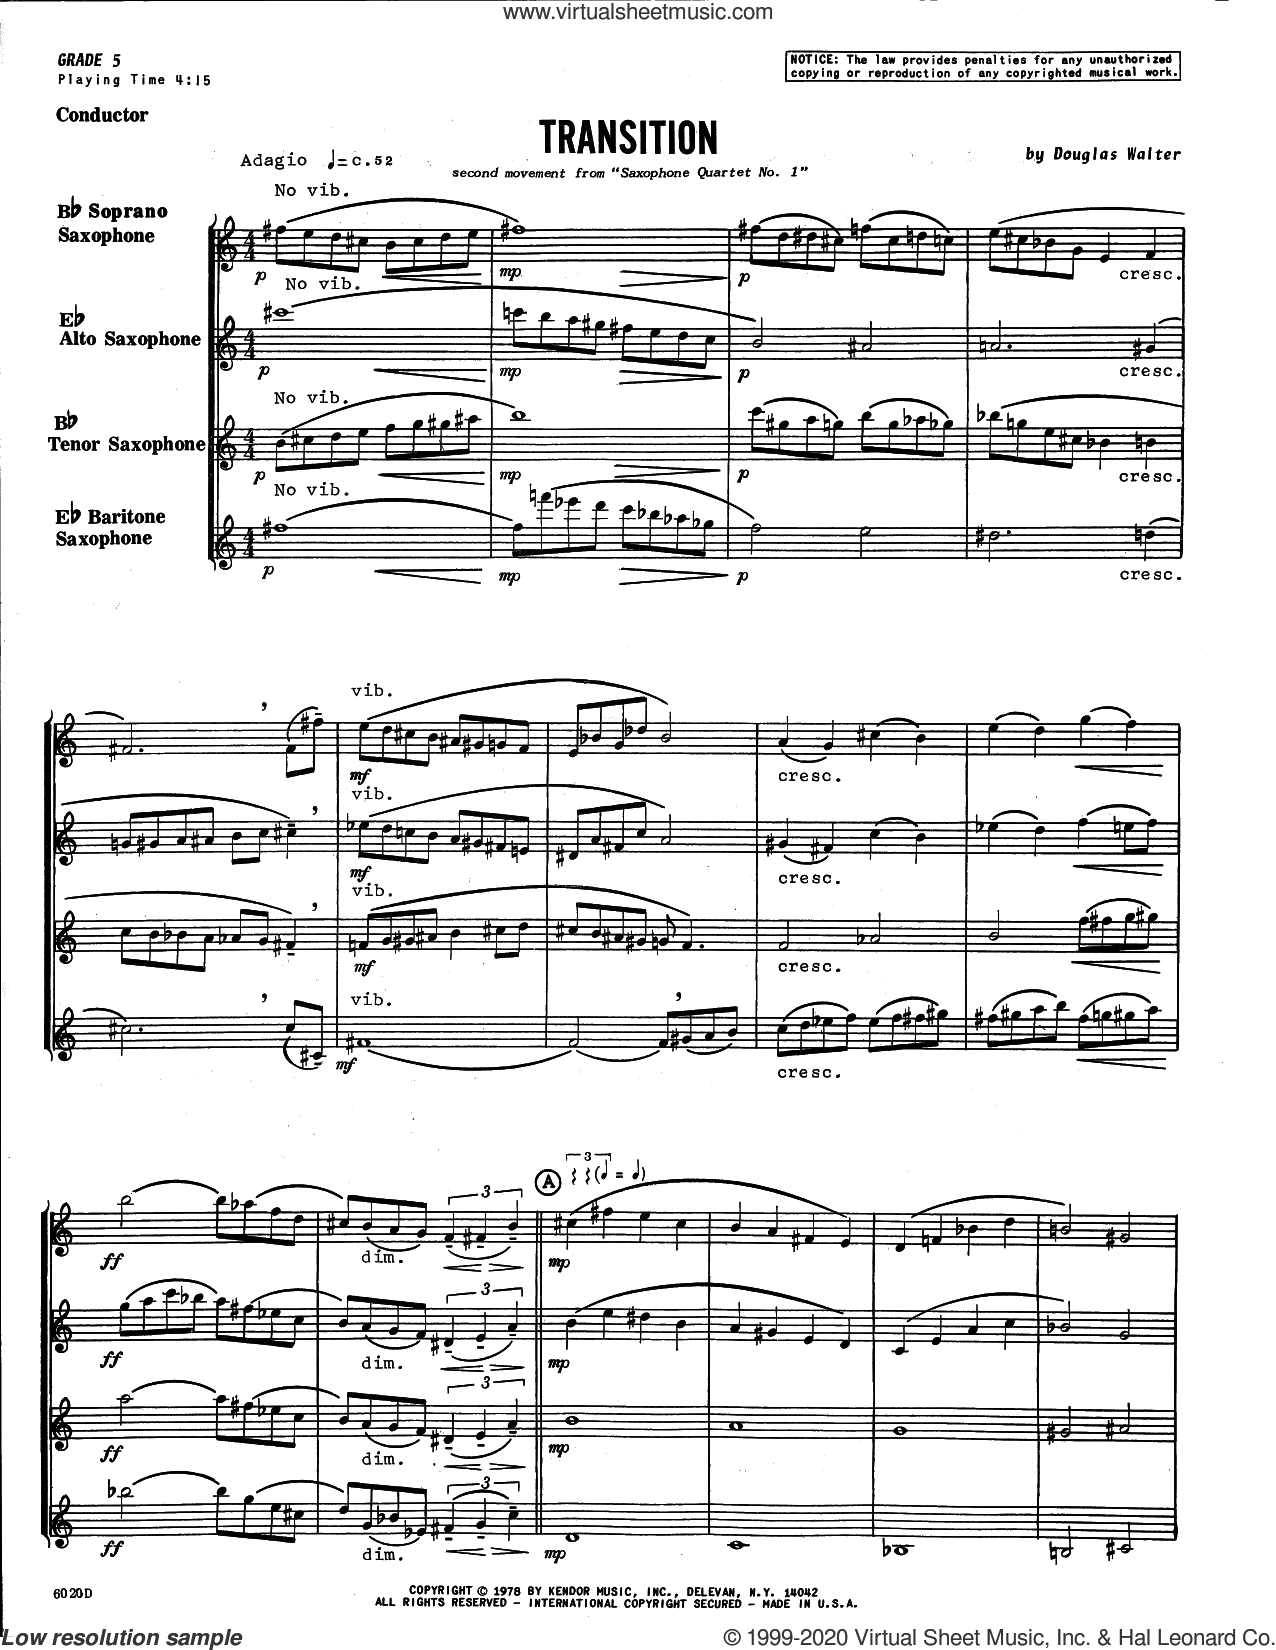 Transition (second movement from Saxophone Quartet No. 1) (COMPLETE) sheet music for saxophone quartet by Douglas Walter, intermediate skill level